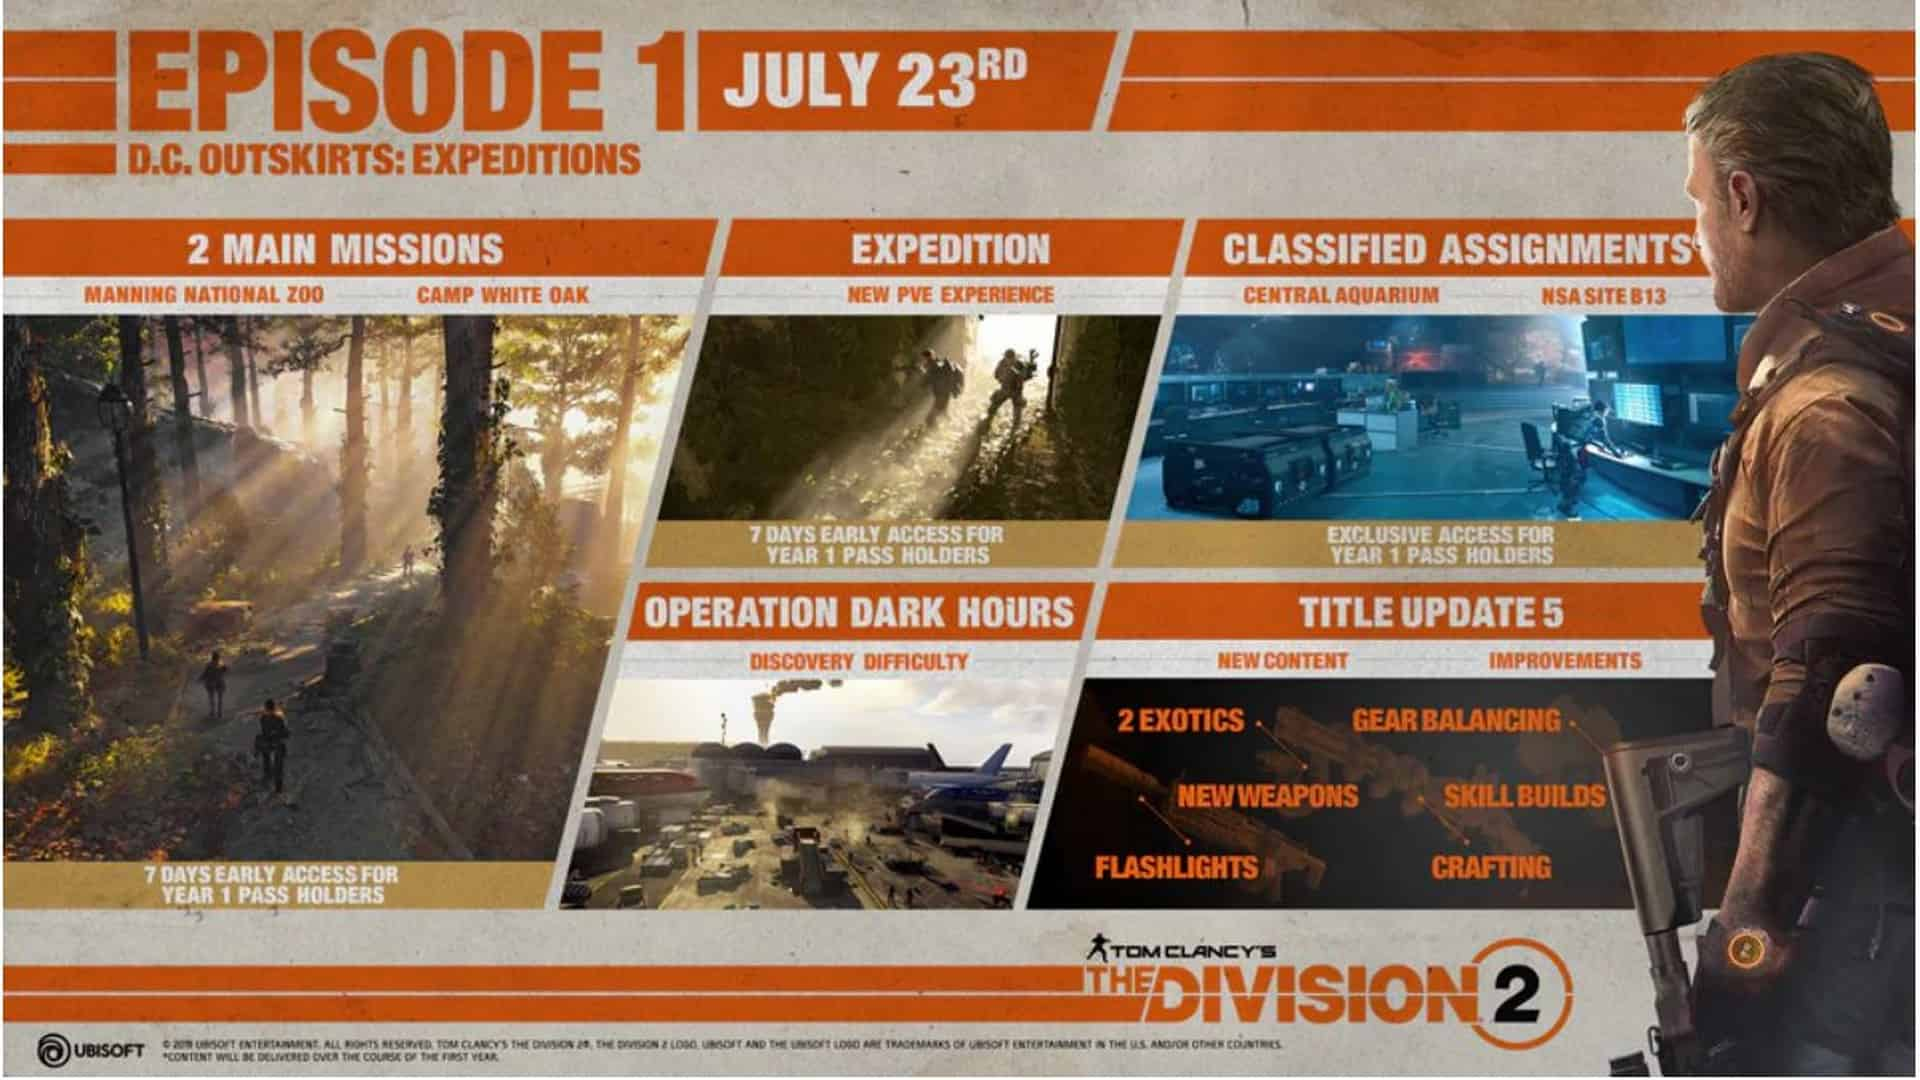 New Free Content For Tom Clancy's The Division 2: Episode 1 – DC Outskirts: Expeditions Will Release July 23rd